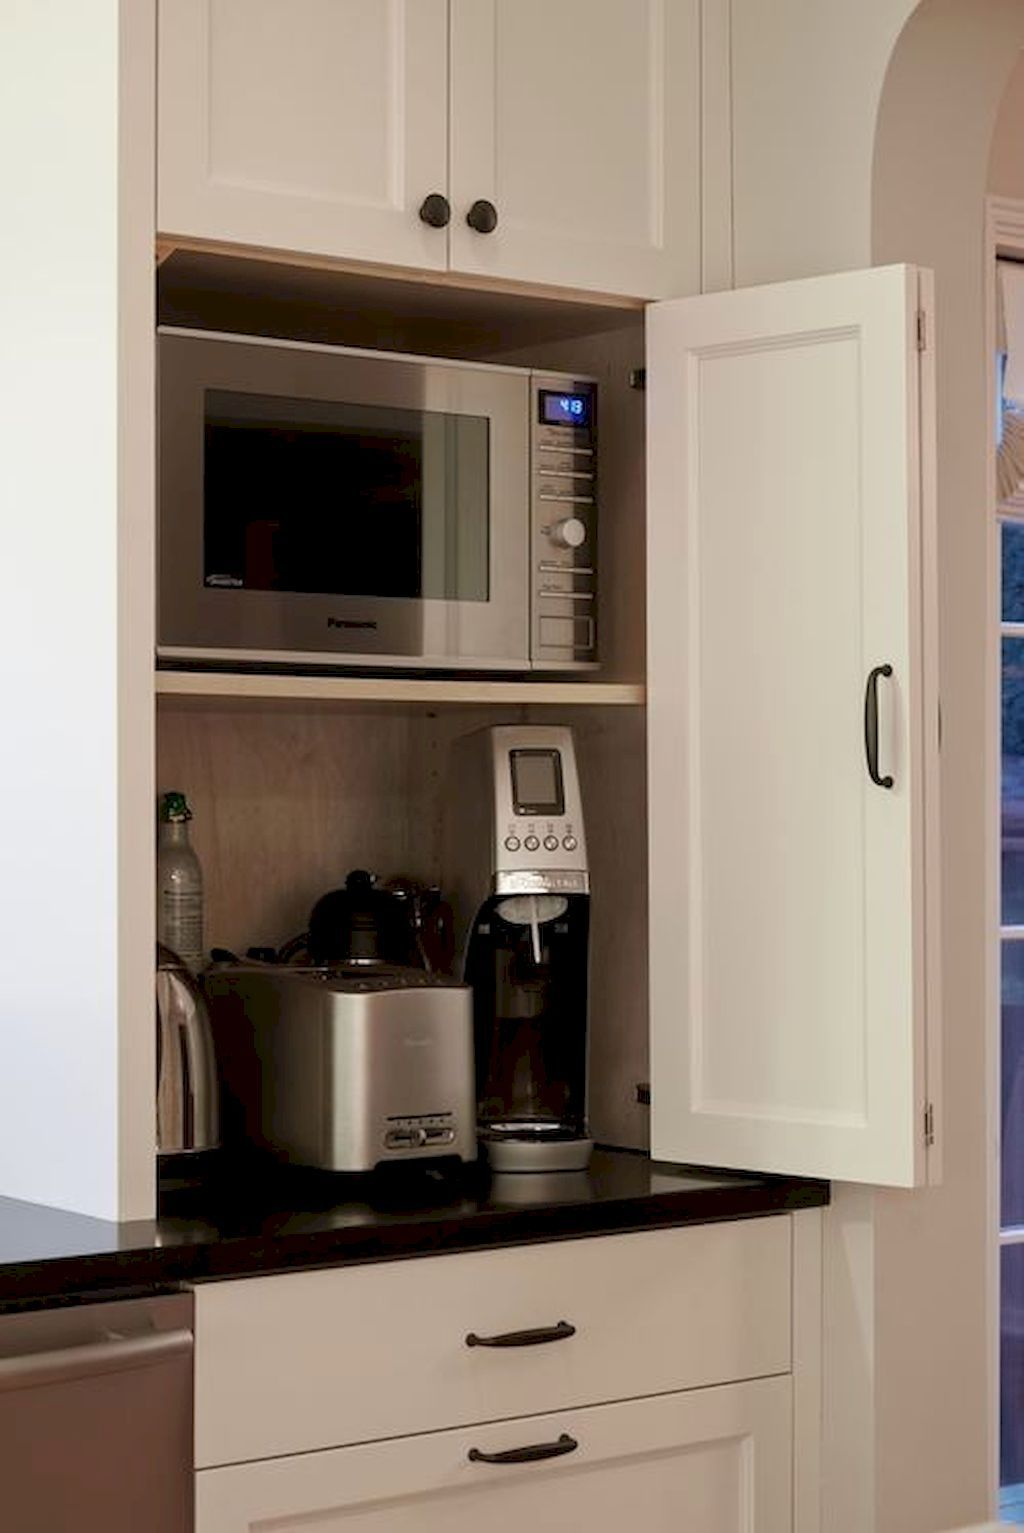 Captivating Kitchen Cupboard Concepts Modern Kitchen Cabinet Design Modern Kitchen Cabinets Kitchen Cabinet Design